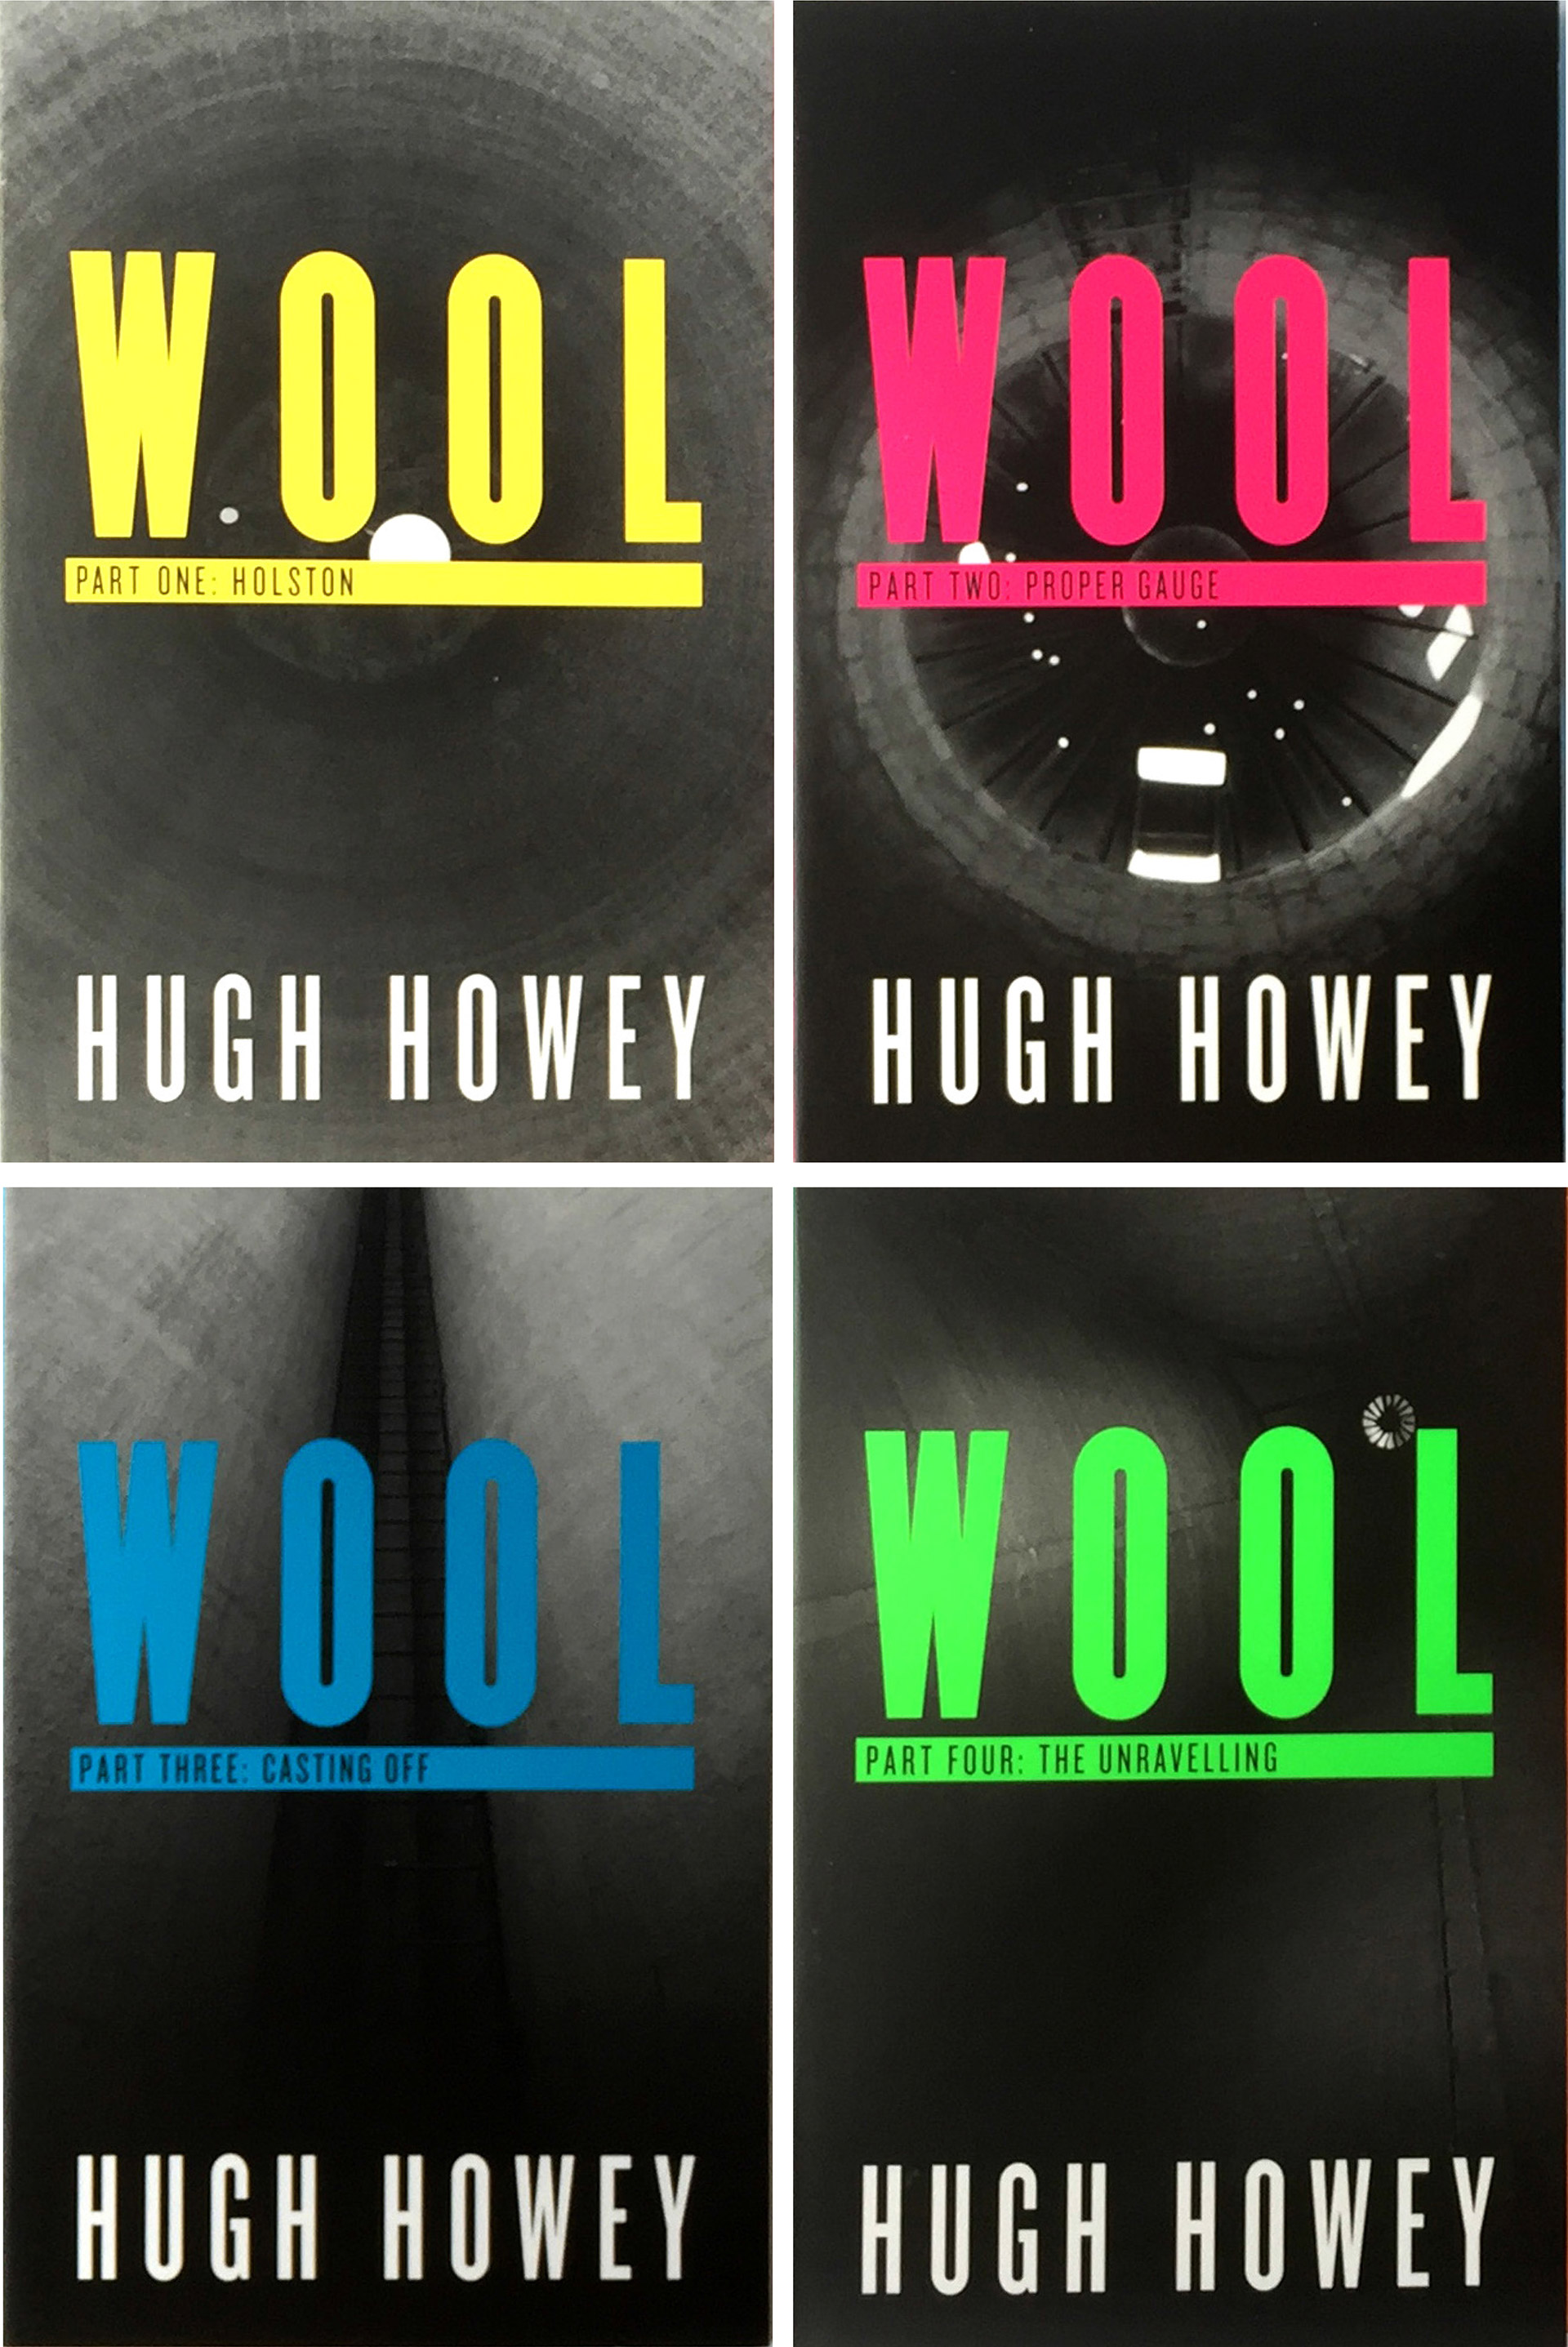 Hugh Howey's Wool series proof covers designed by Irish Butcher